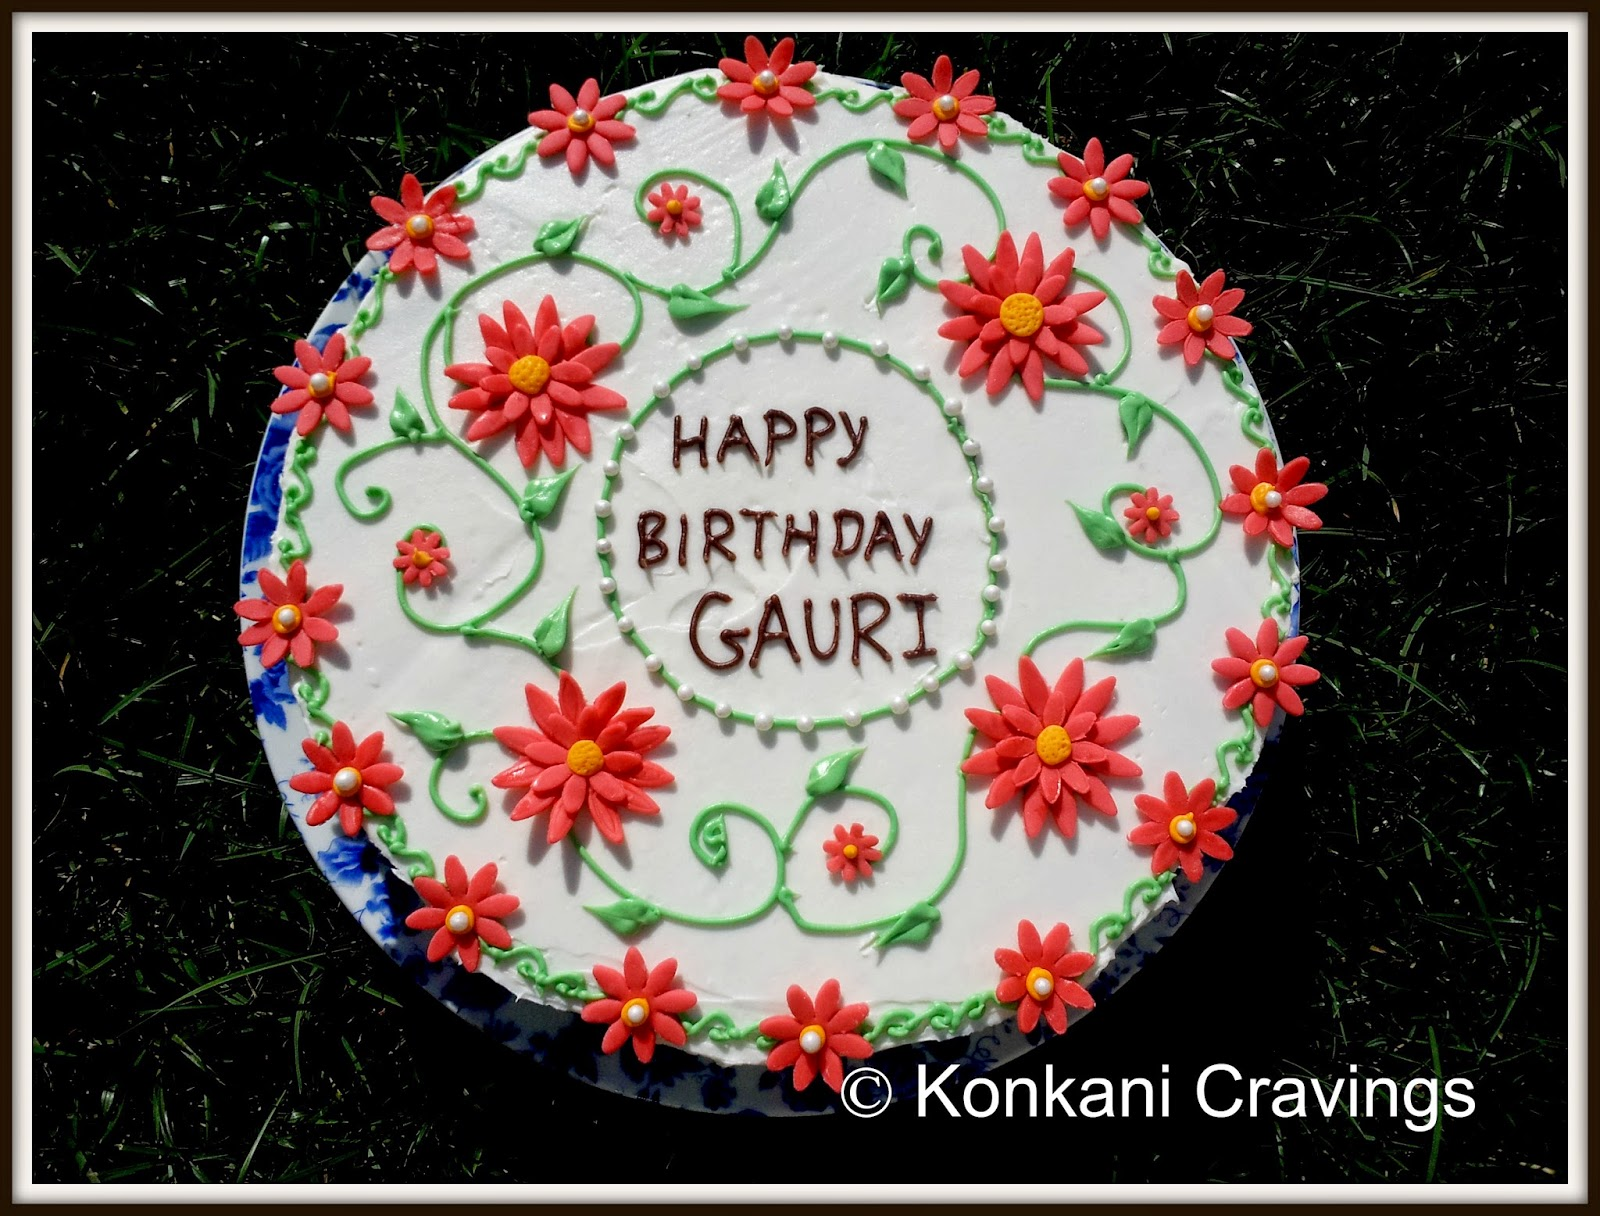 Konkani cravings birthday cake with fondant flowers the cake was regular butter cake flavored with lemon juice lemon zest and marbled with green food coloring izmirmasajfo